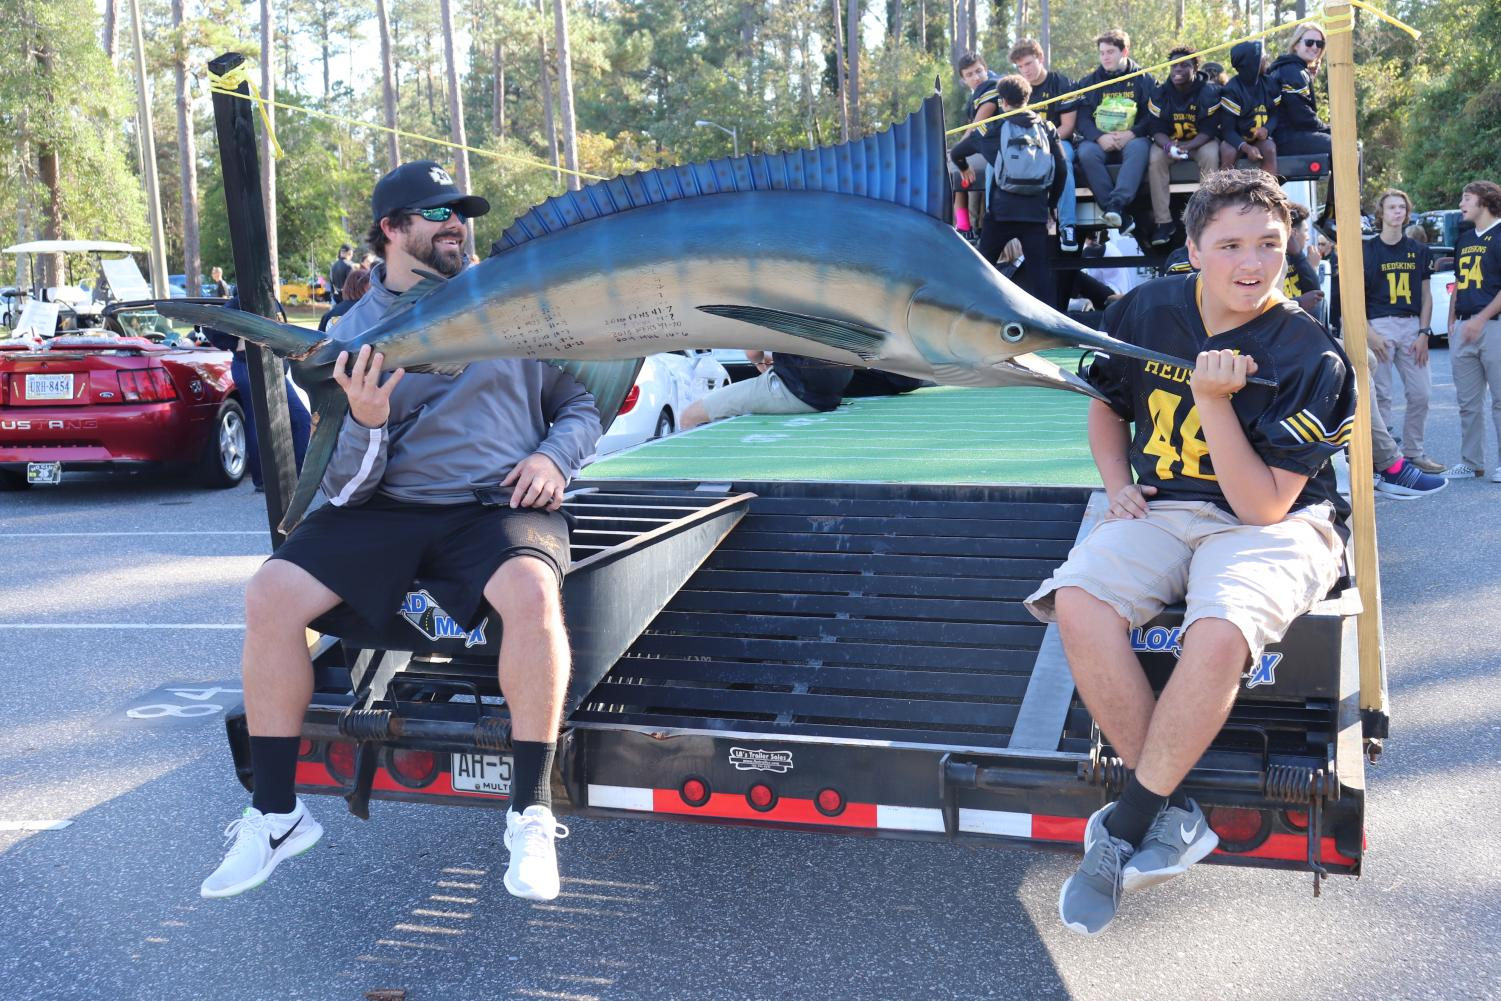 Unidentified man and Josh Sexton carry the marlin trophy in the homecoming parade.